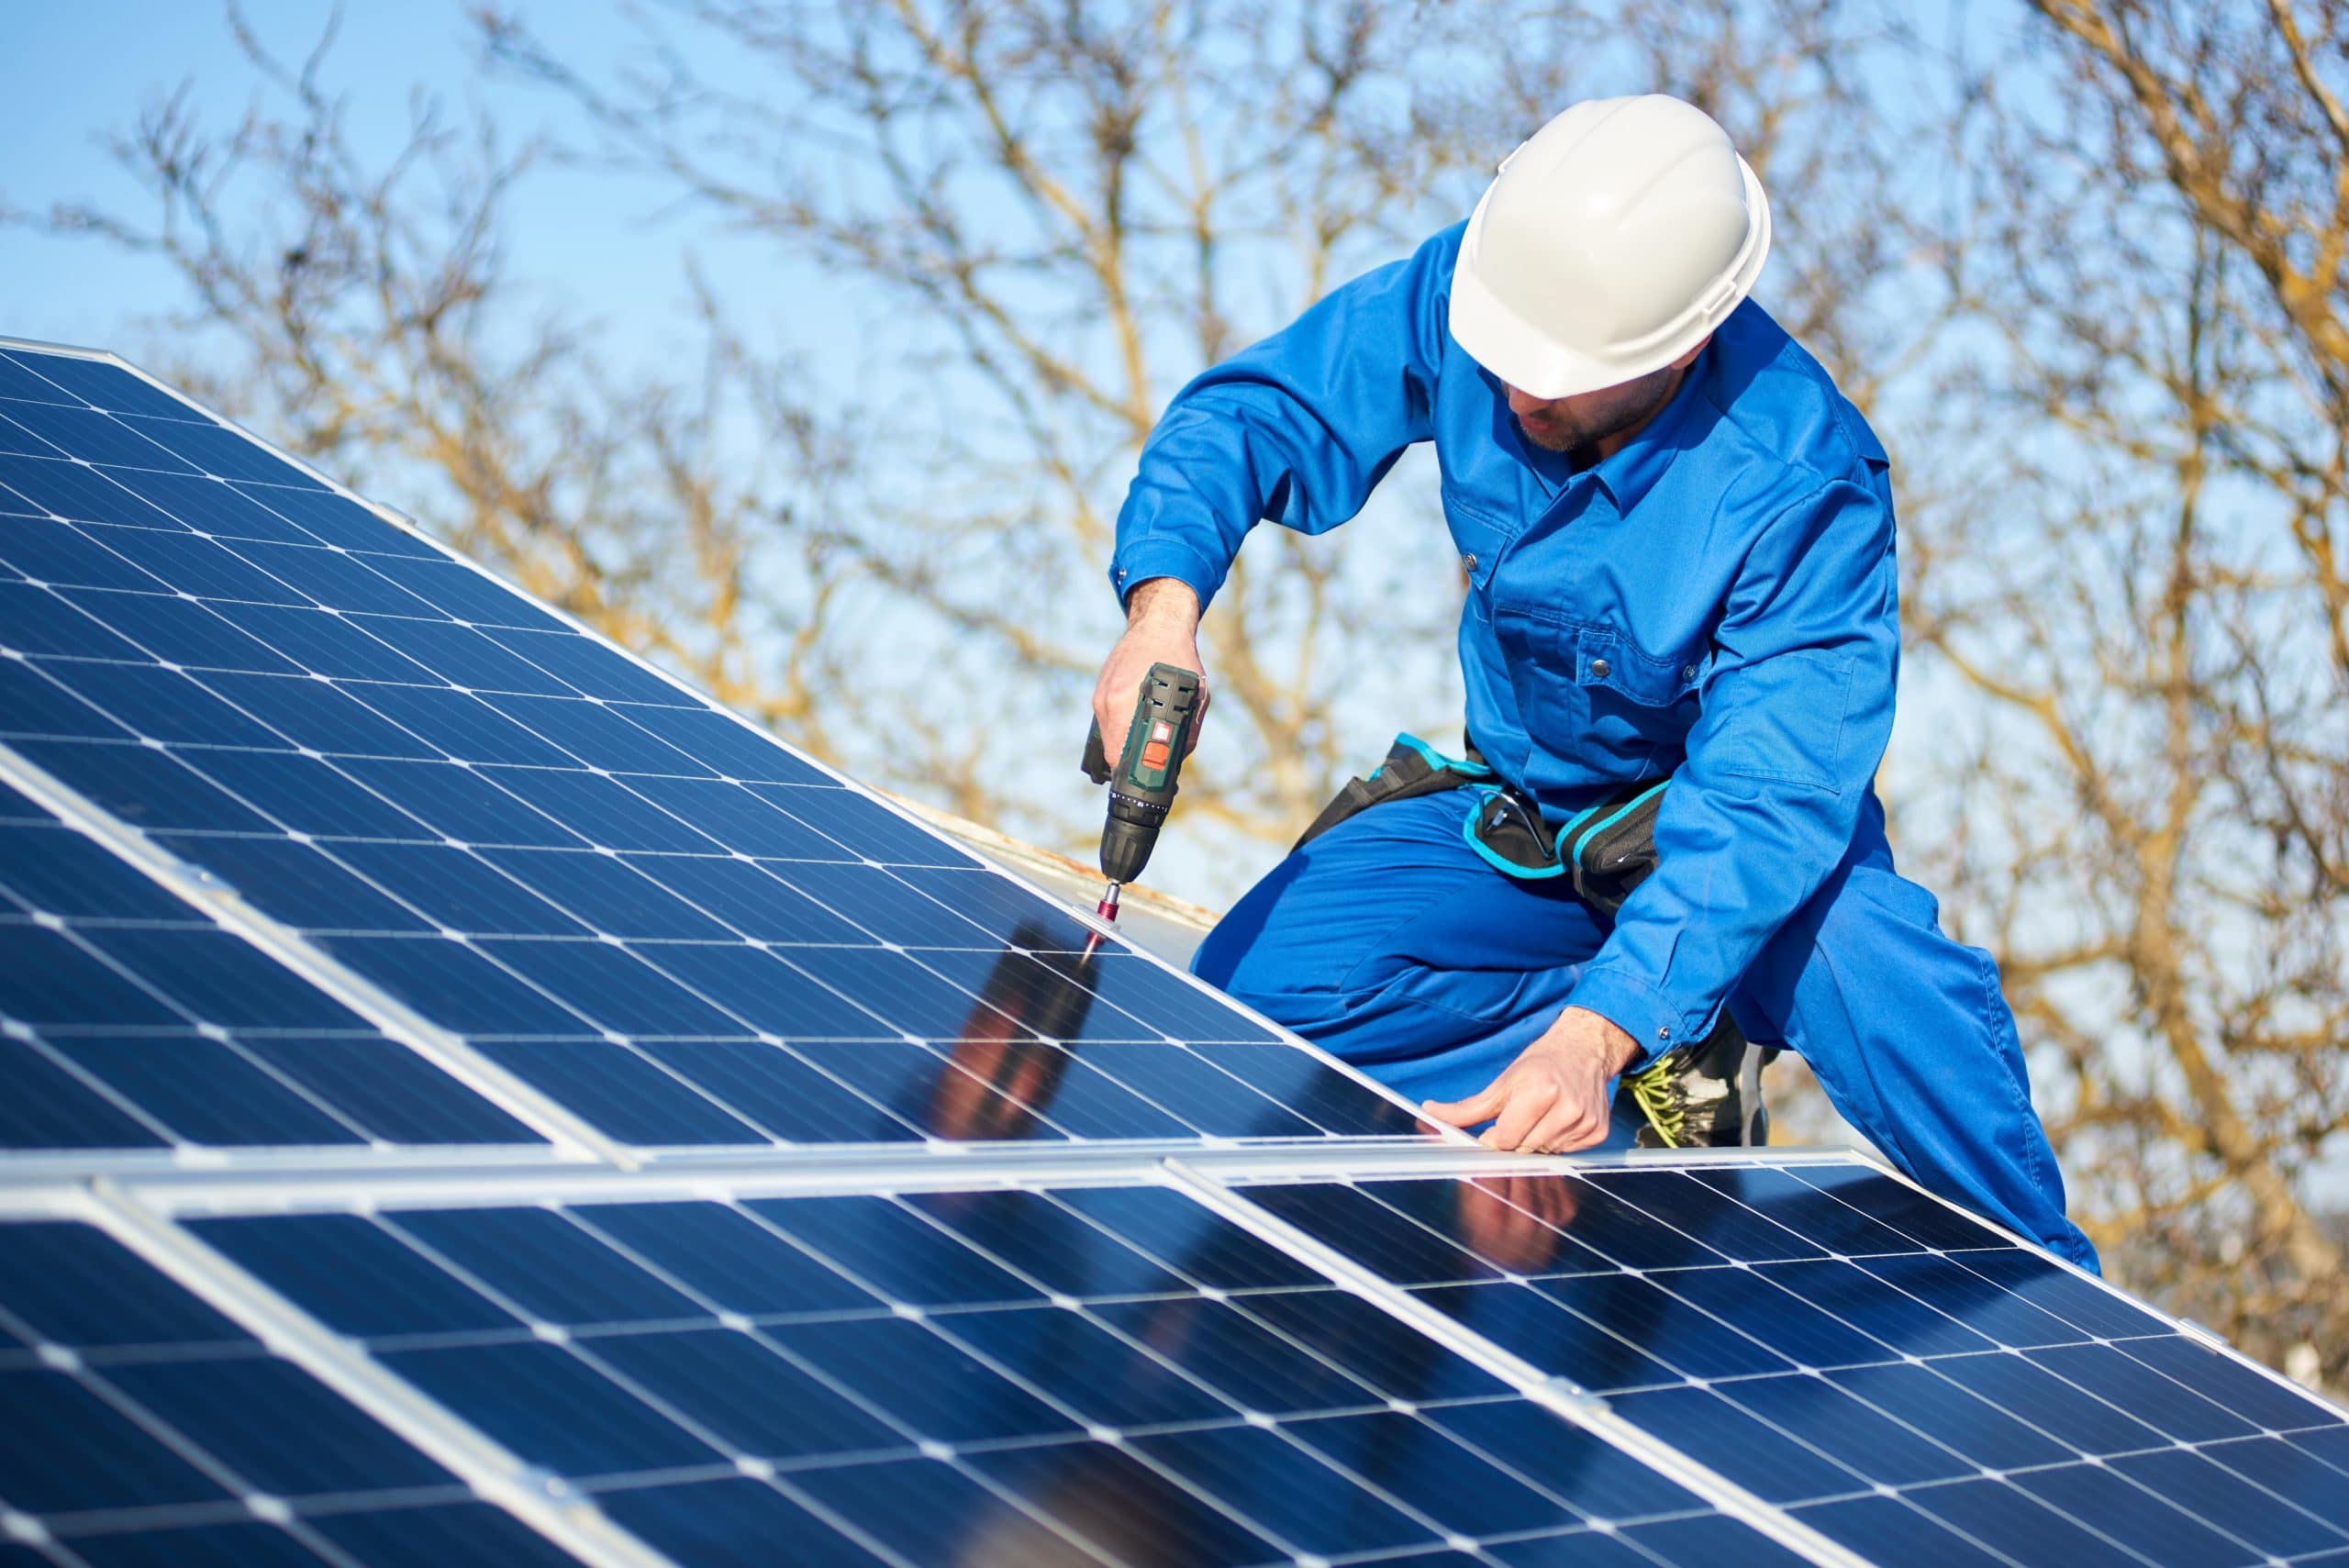 Solar Panel Installation - Get Your Quote